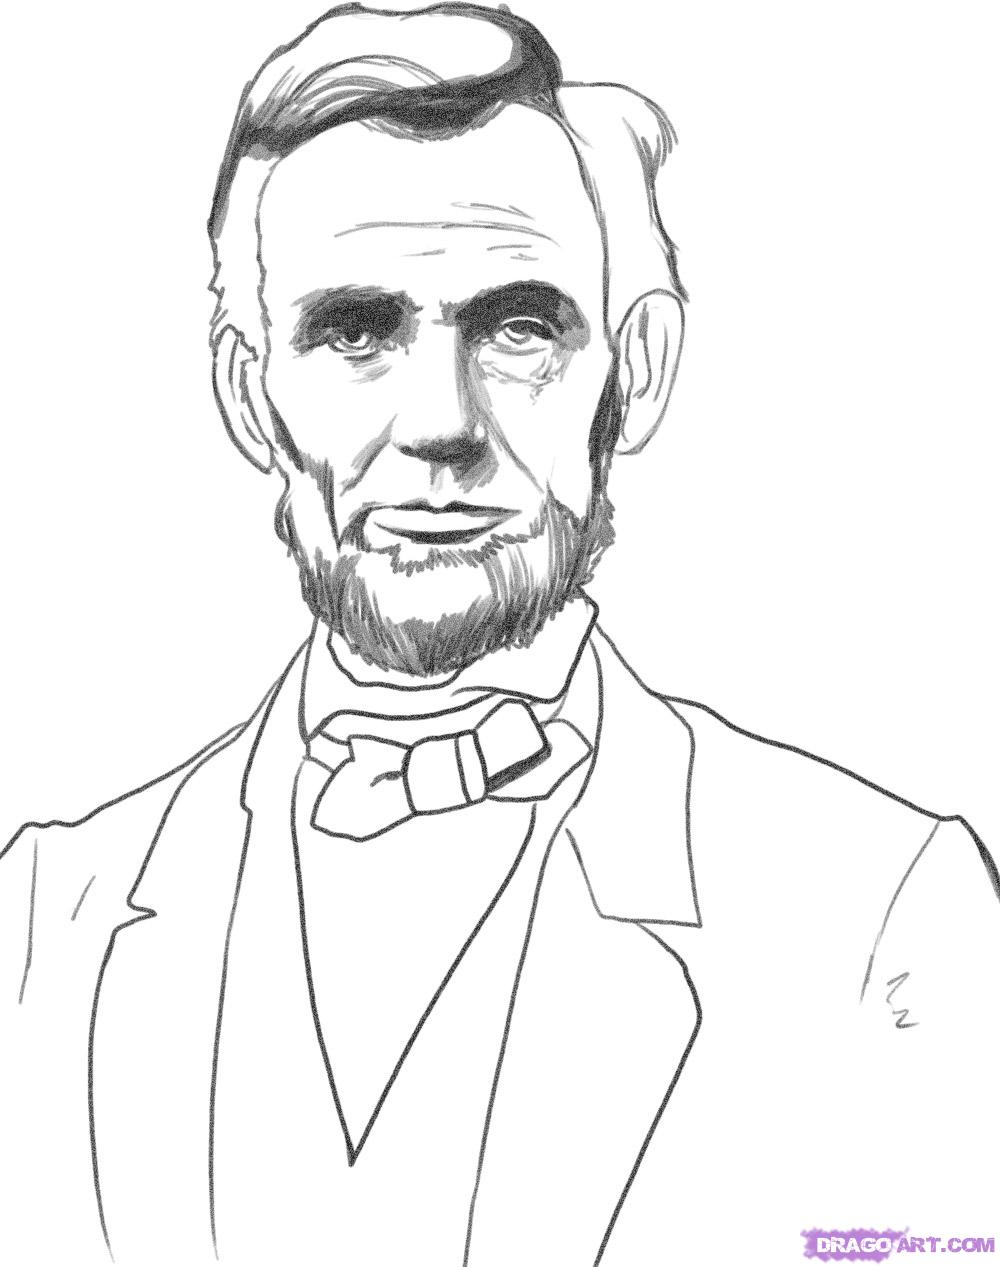 day2dayjobs.com: Success Story of Abraham Lincoln